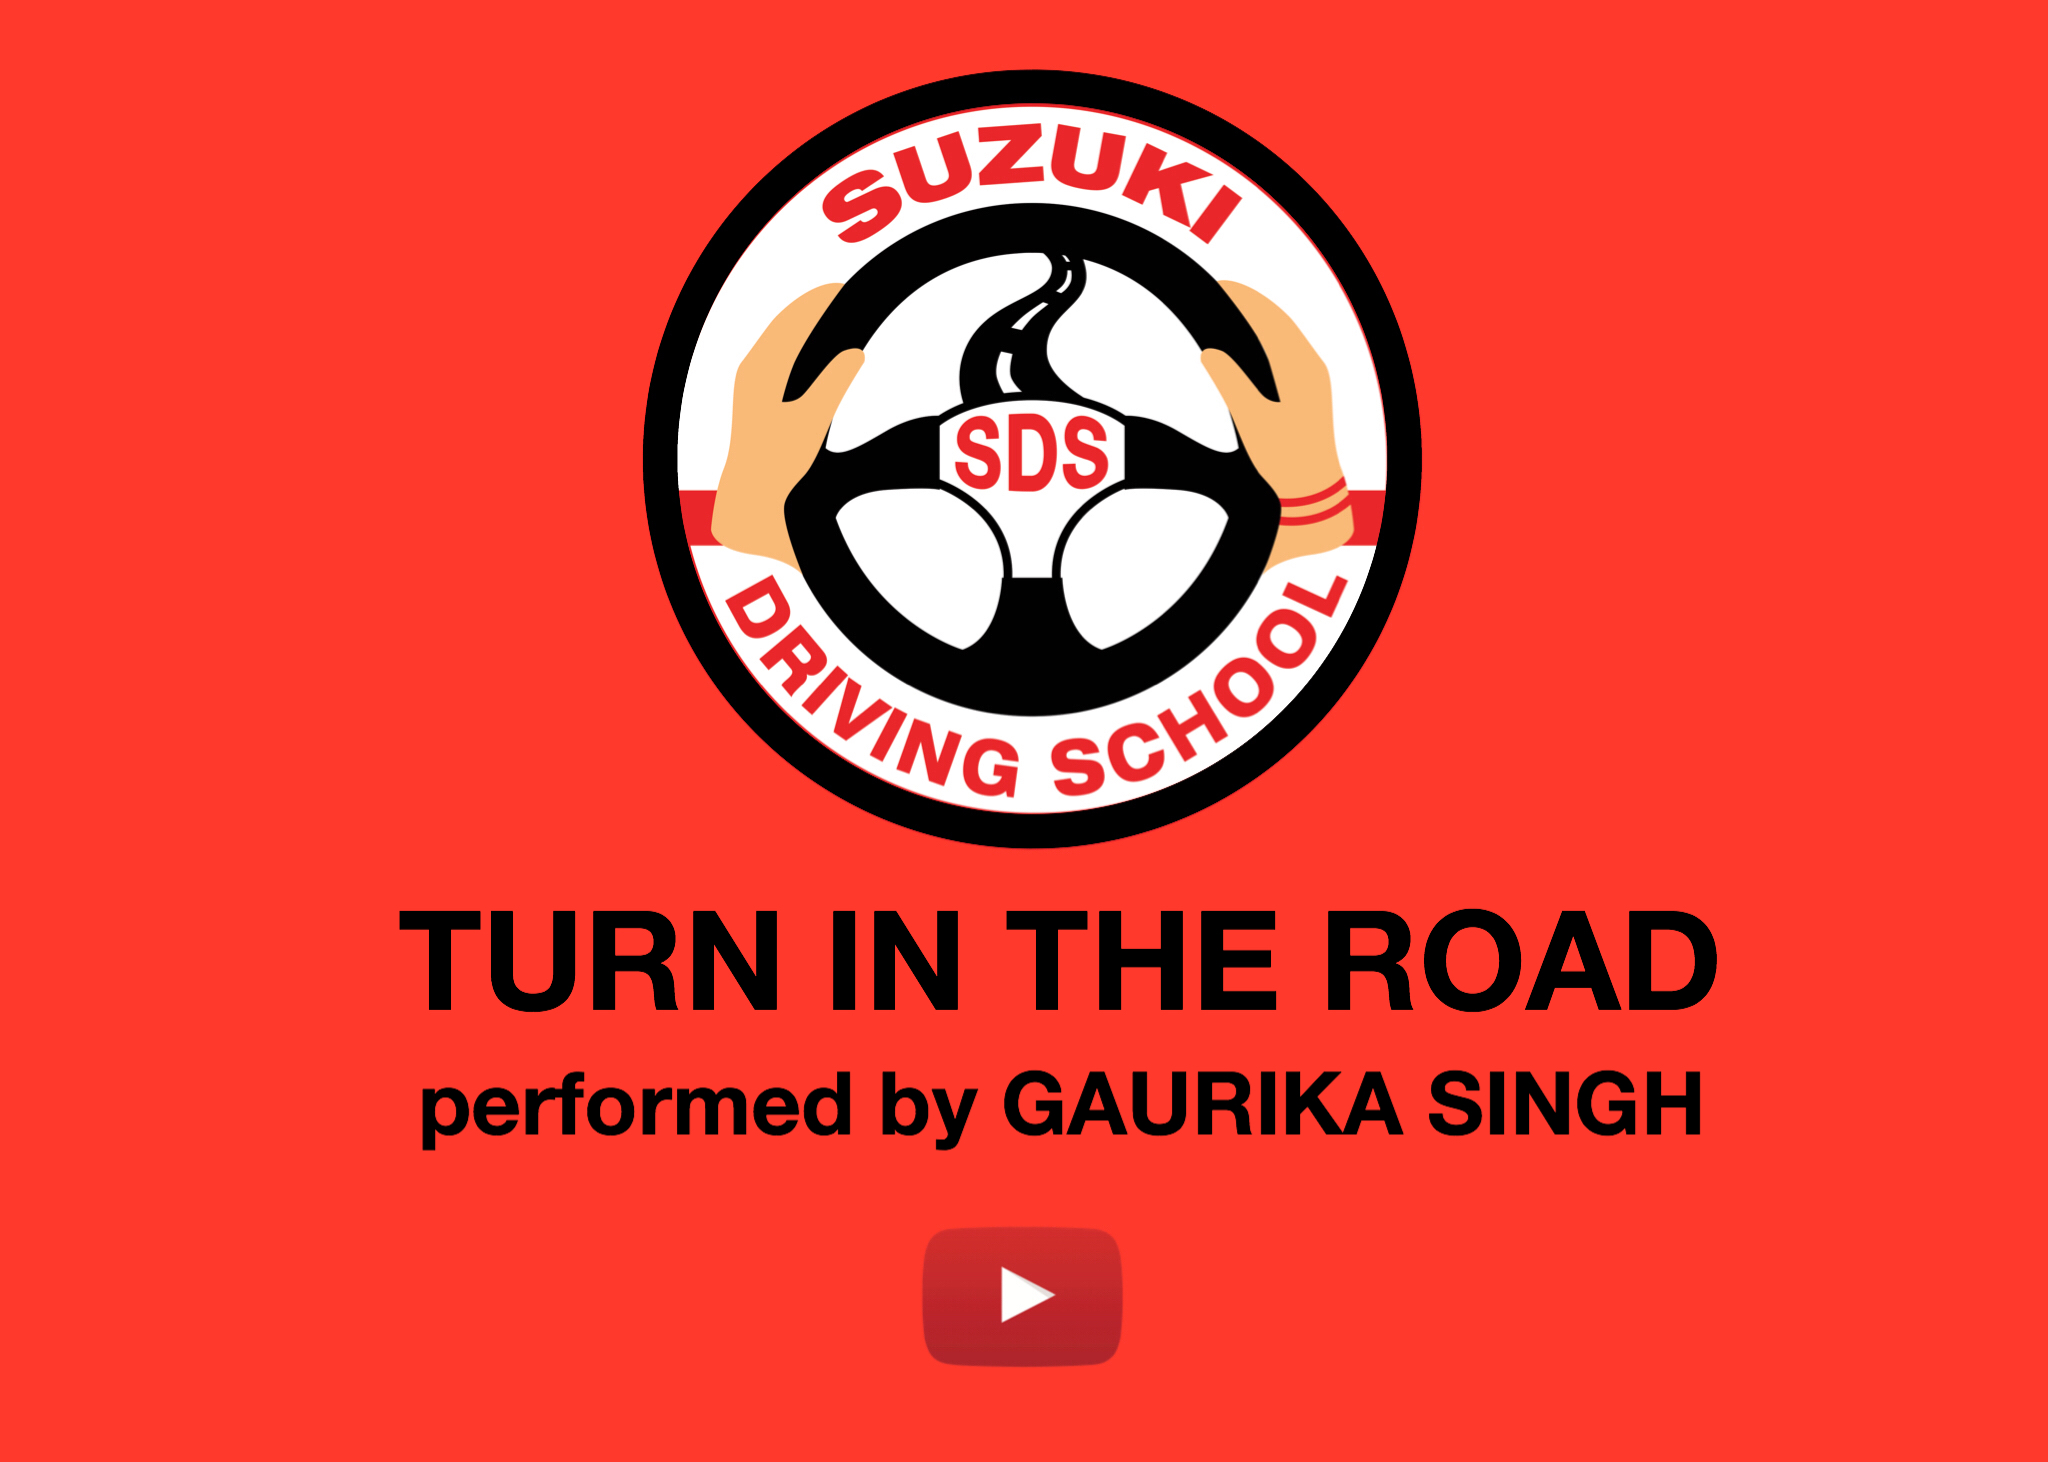 TURN IN THE ROAD with GAURIKA SINGH